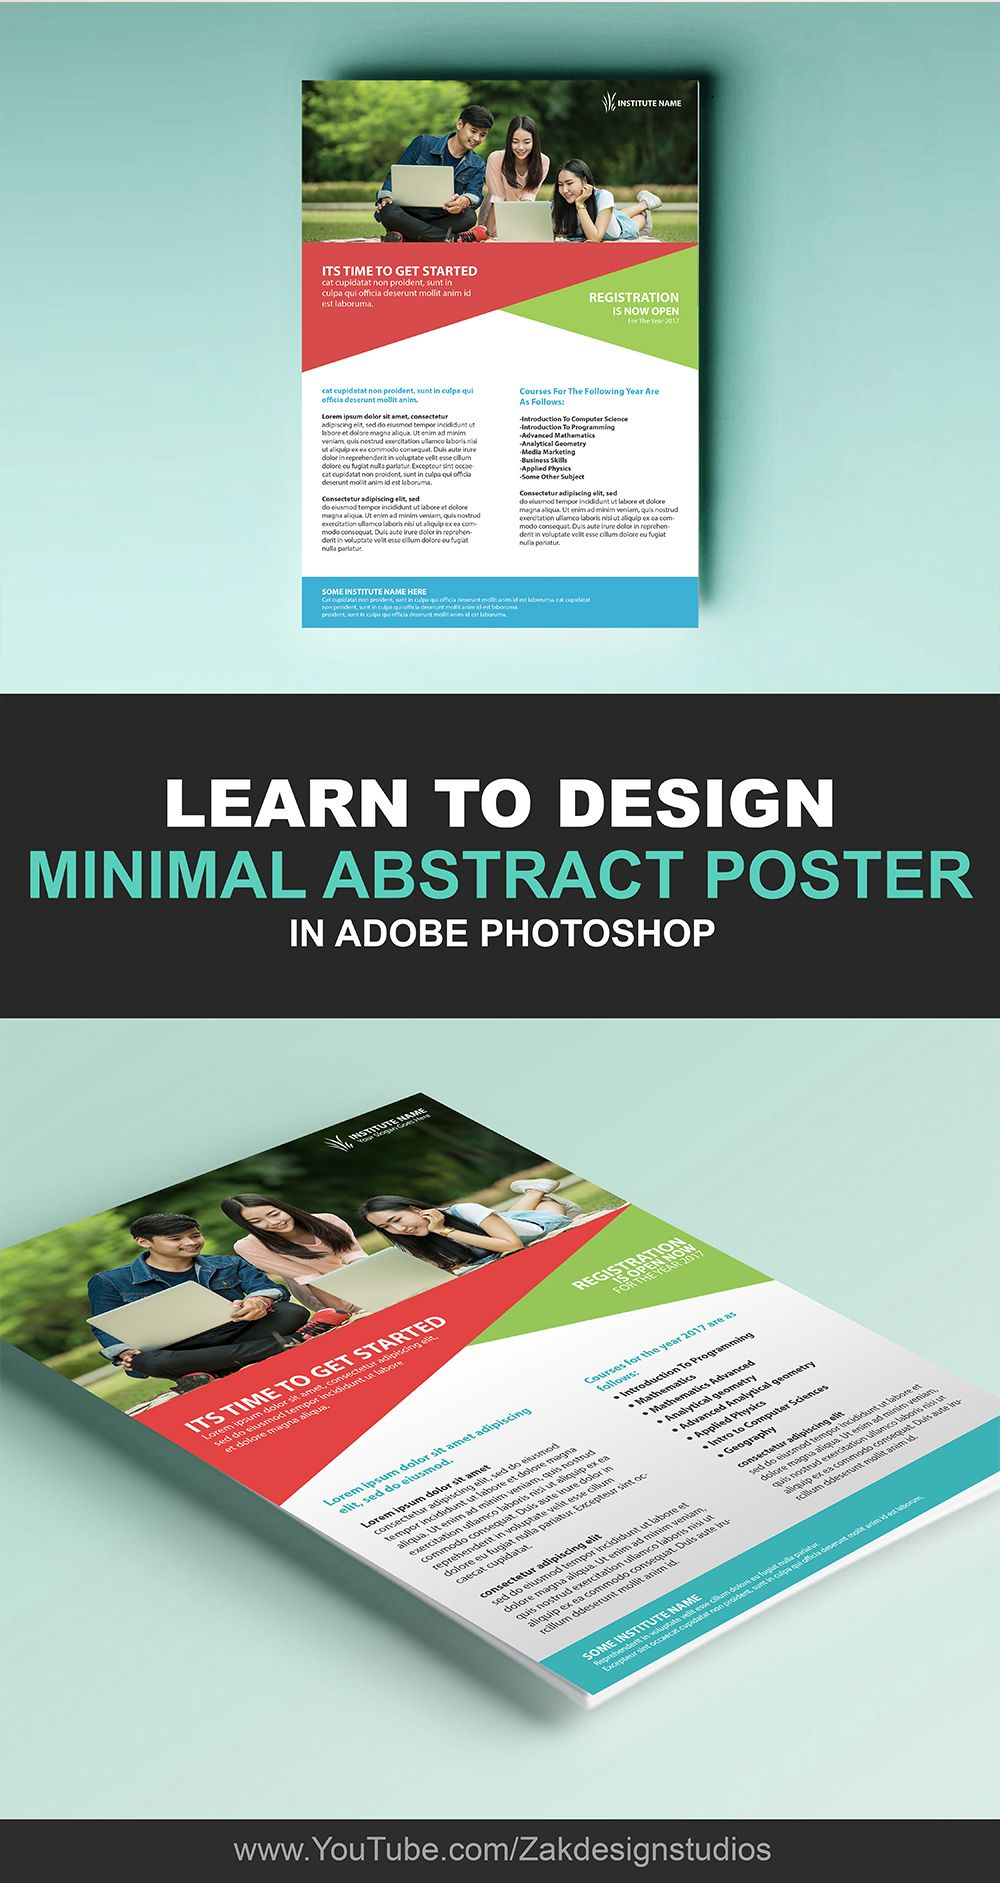 learn to design education flyer design in adobe photoshop photoshop